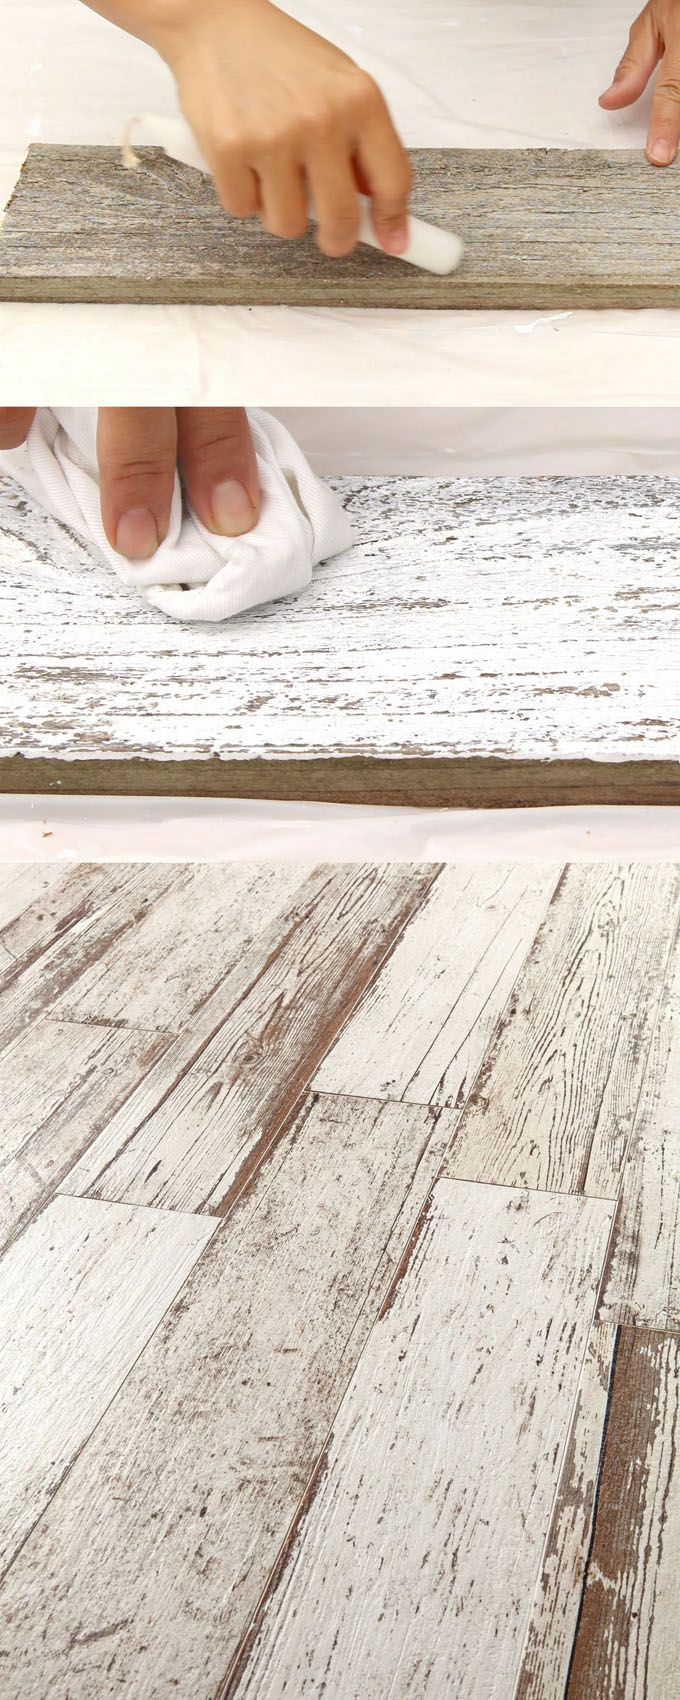 How to Whitewash Wood in 3 Simple Ways - An Ultimate Guide - Top 25+ Best White Washed Floors Ideas On Pinterest White Wash